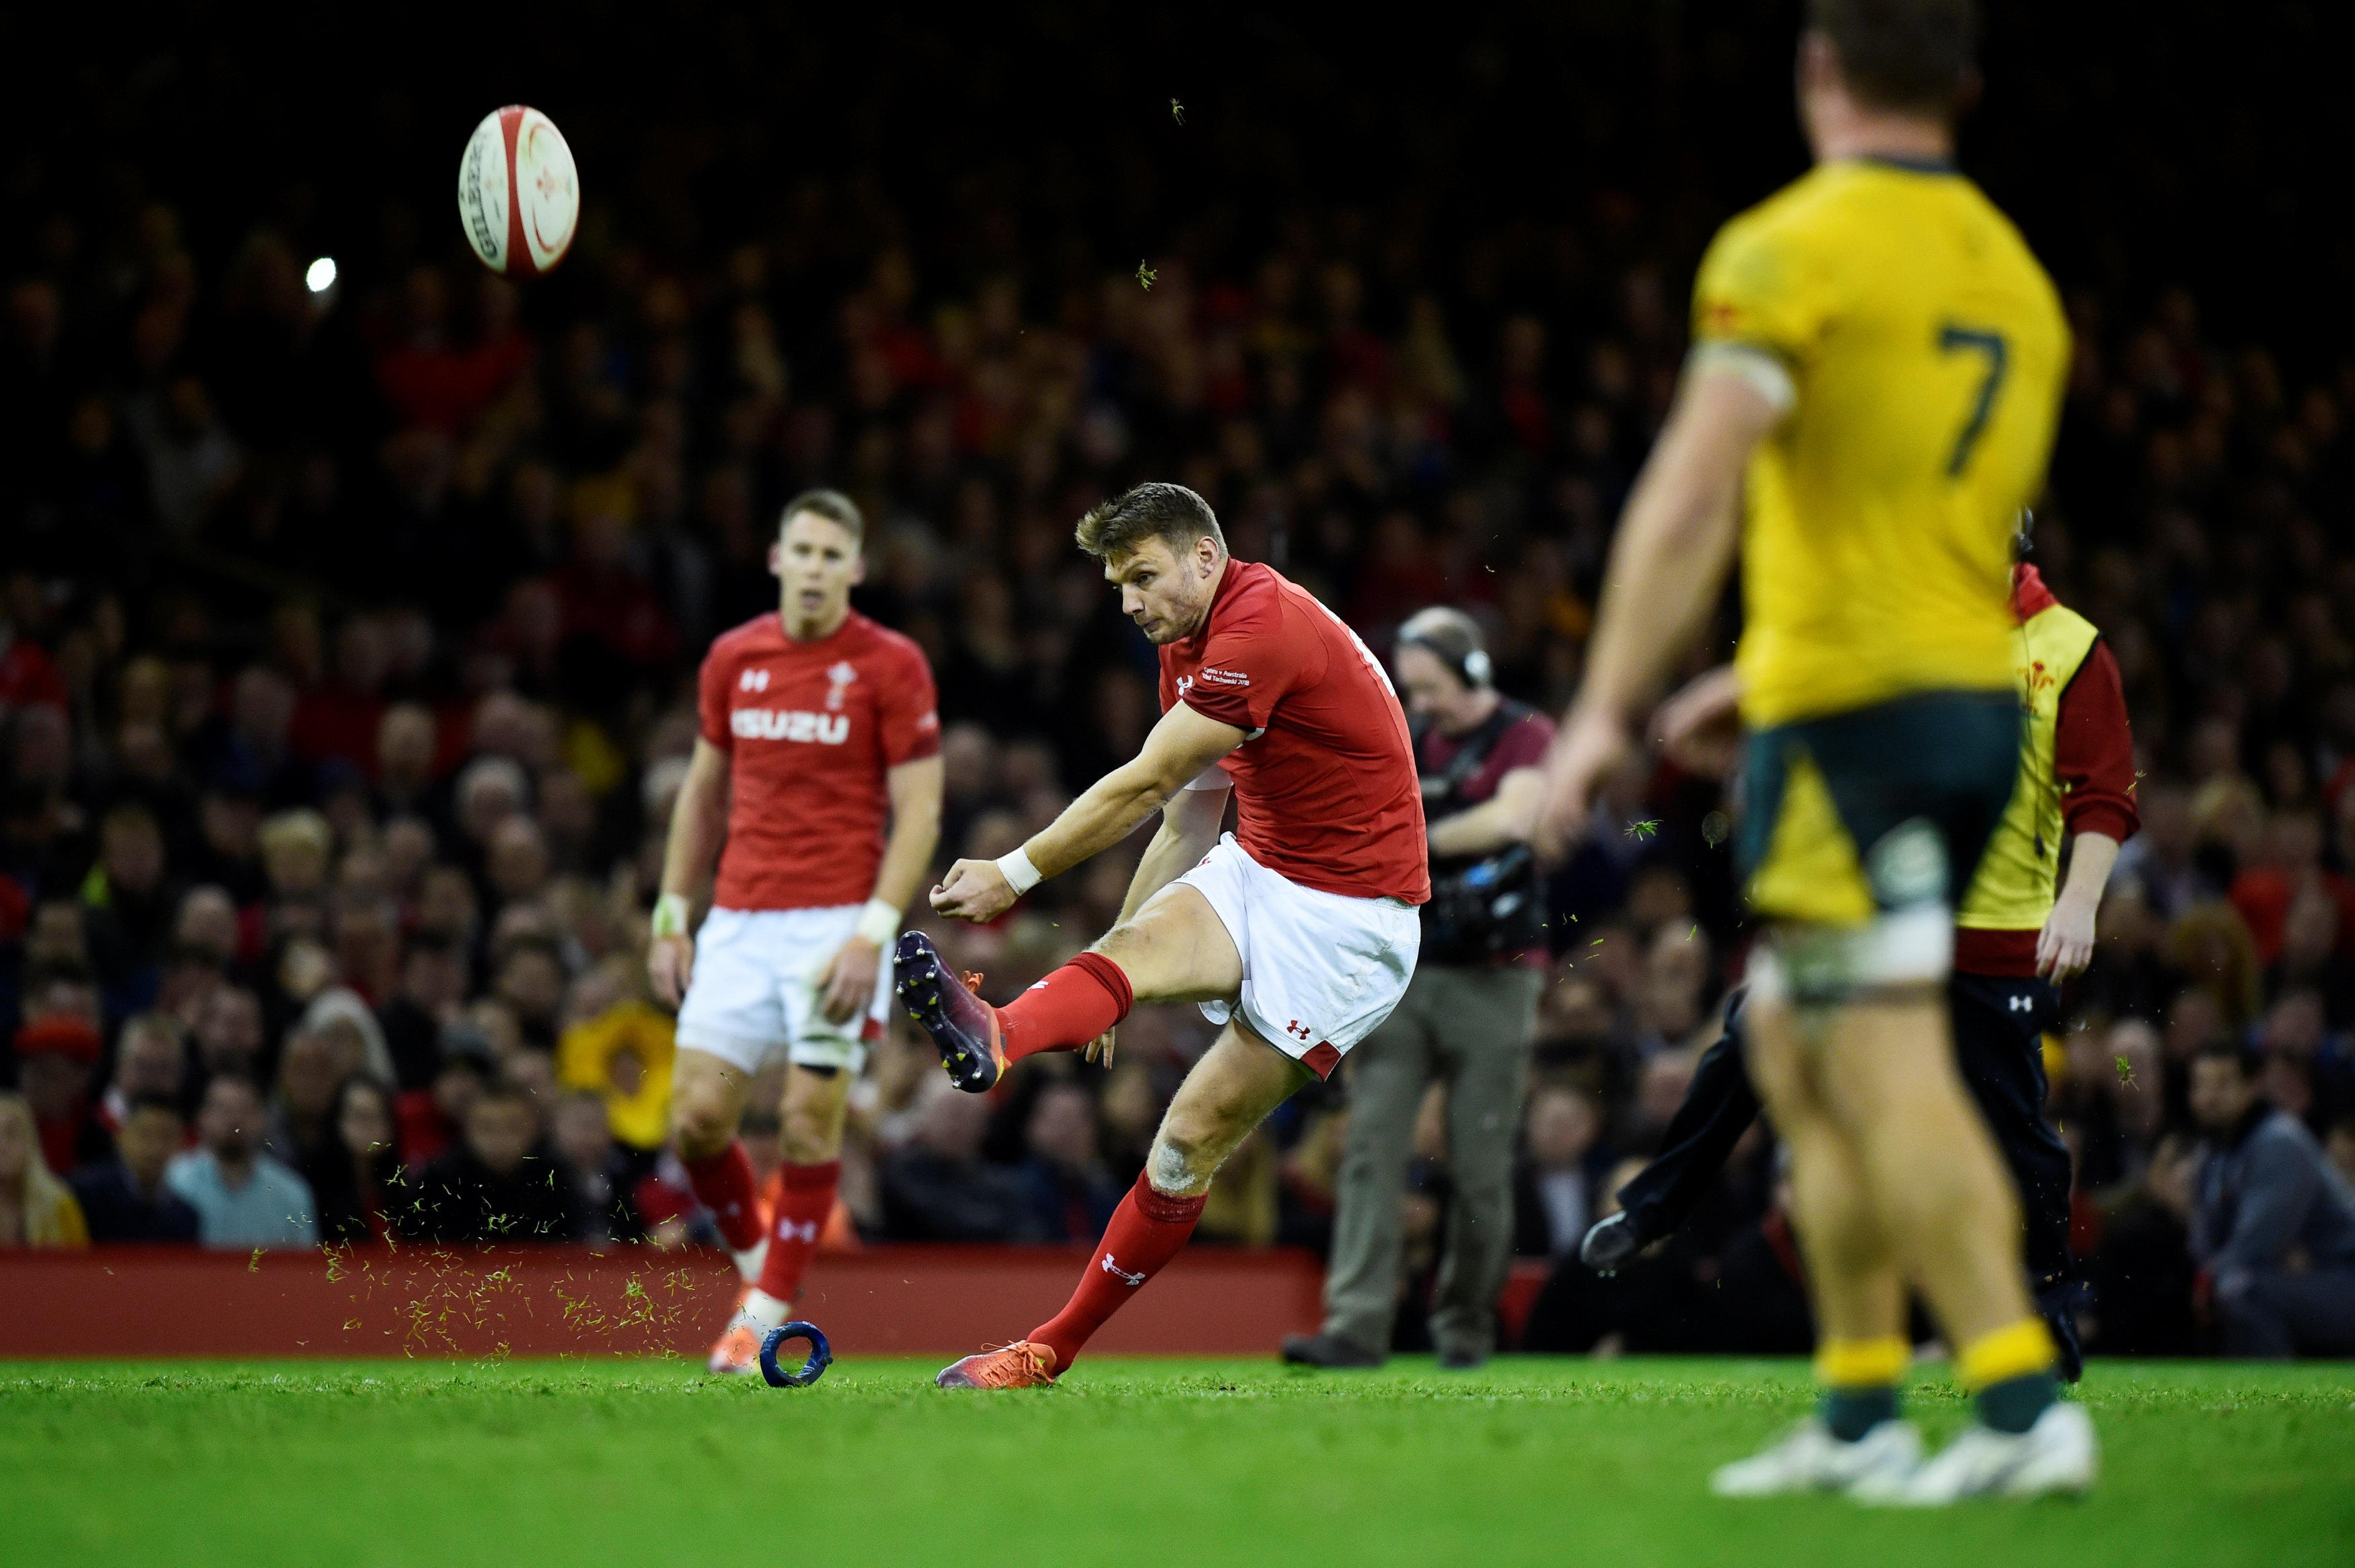 When one man was needed to step up - that man was Dan Biggar